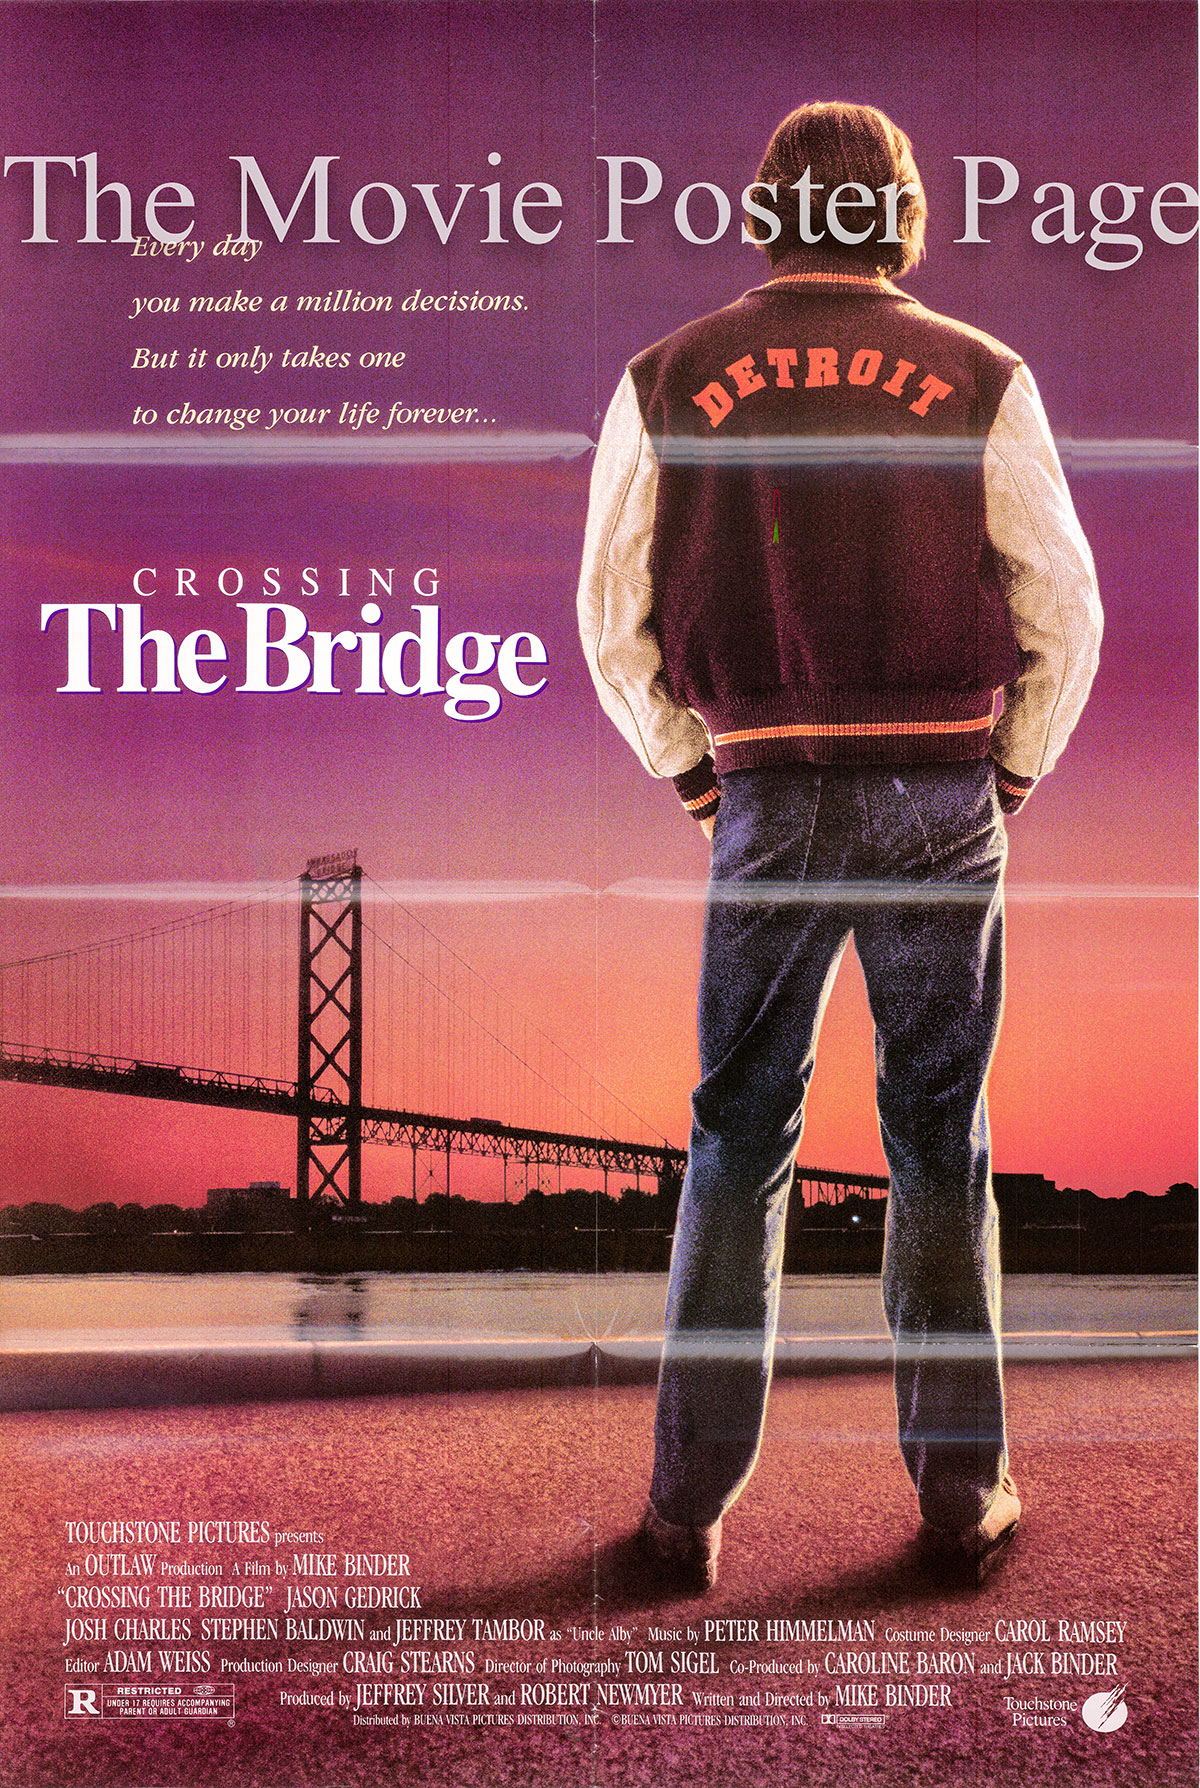 Pictured is a US promotional one-sheet poster for the 1992 Mike Binder film Crossing the Bridge starring Josh Charles.